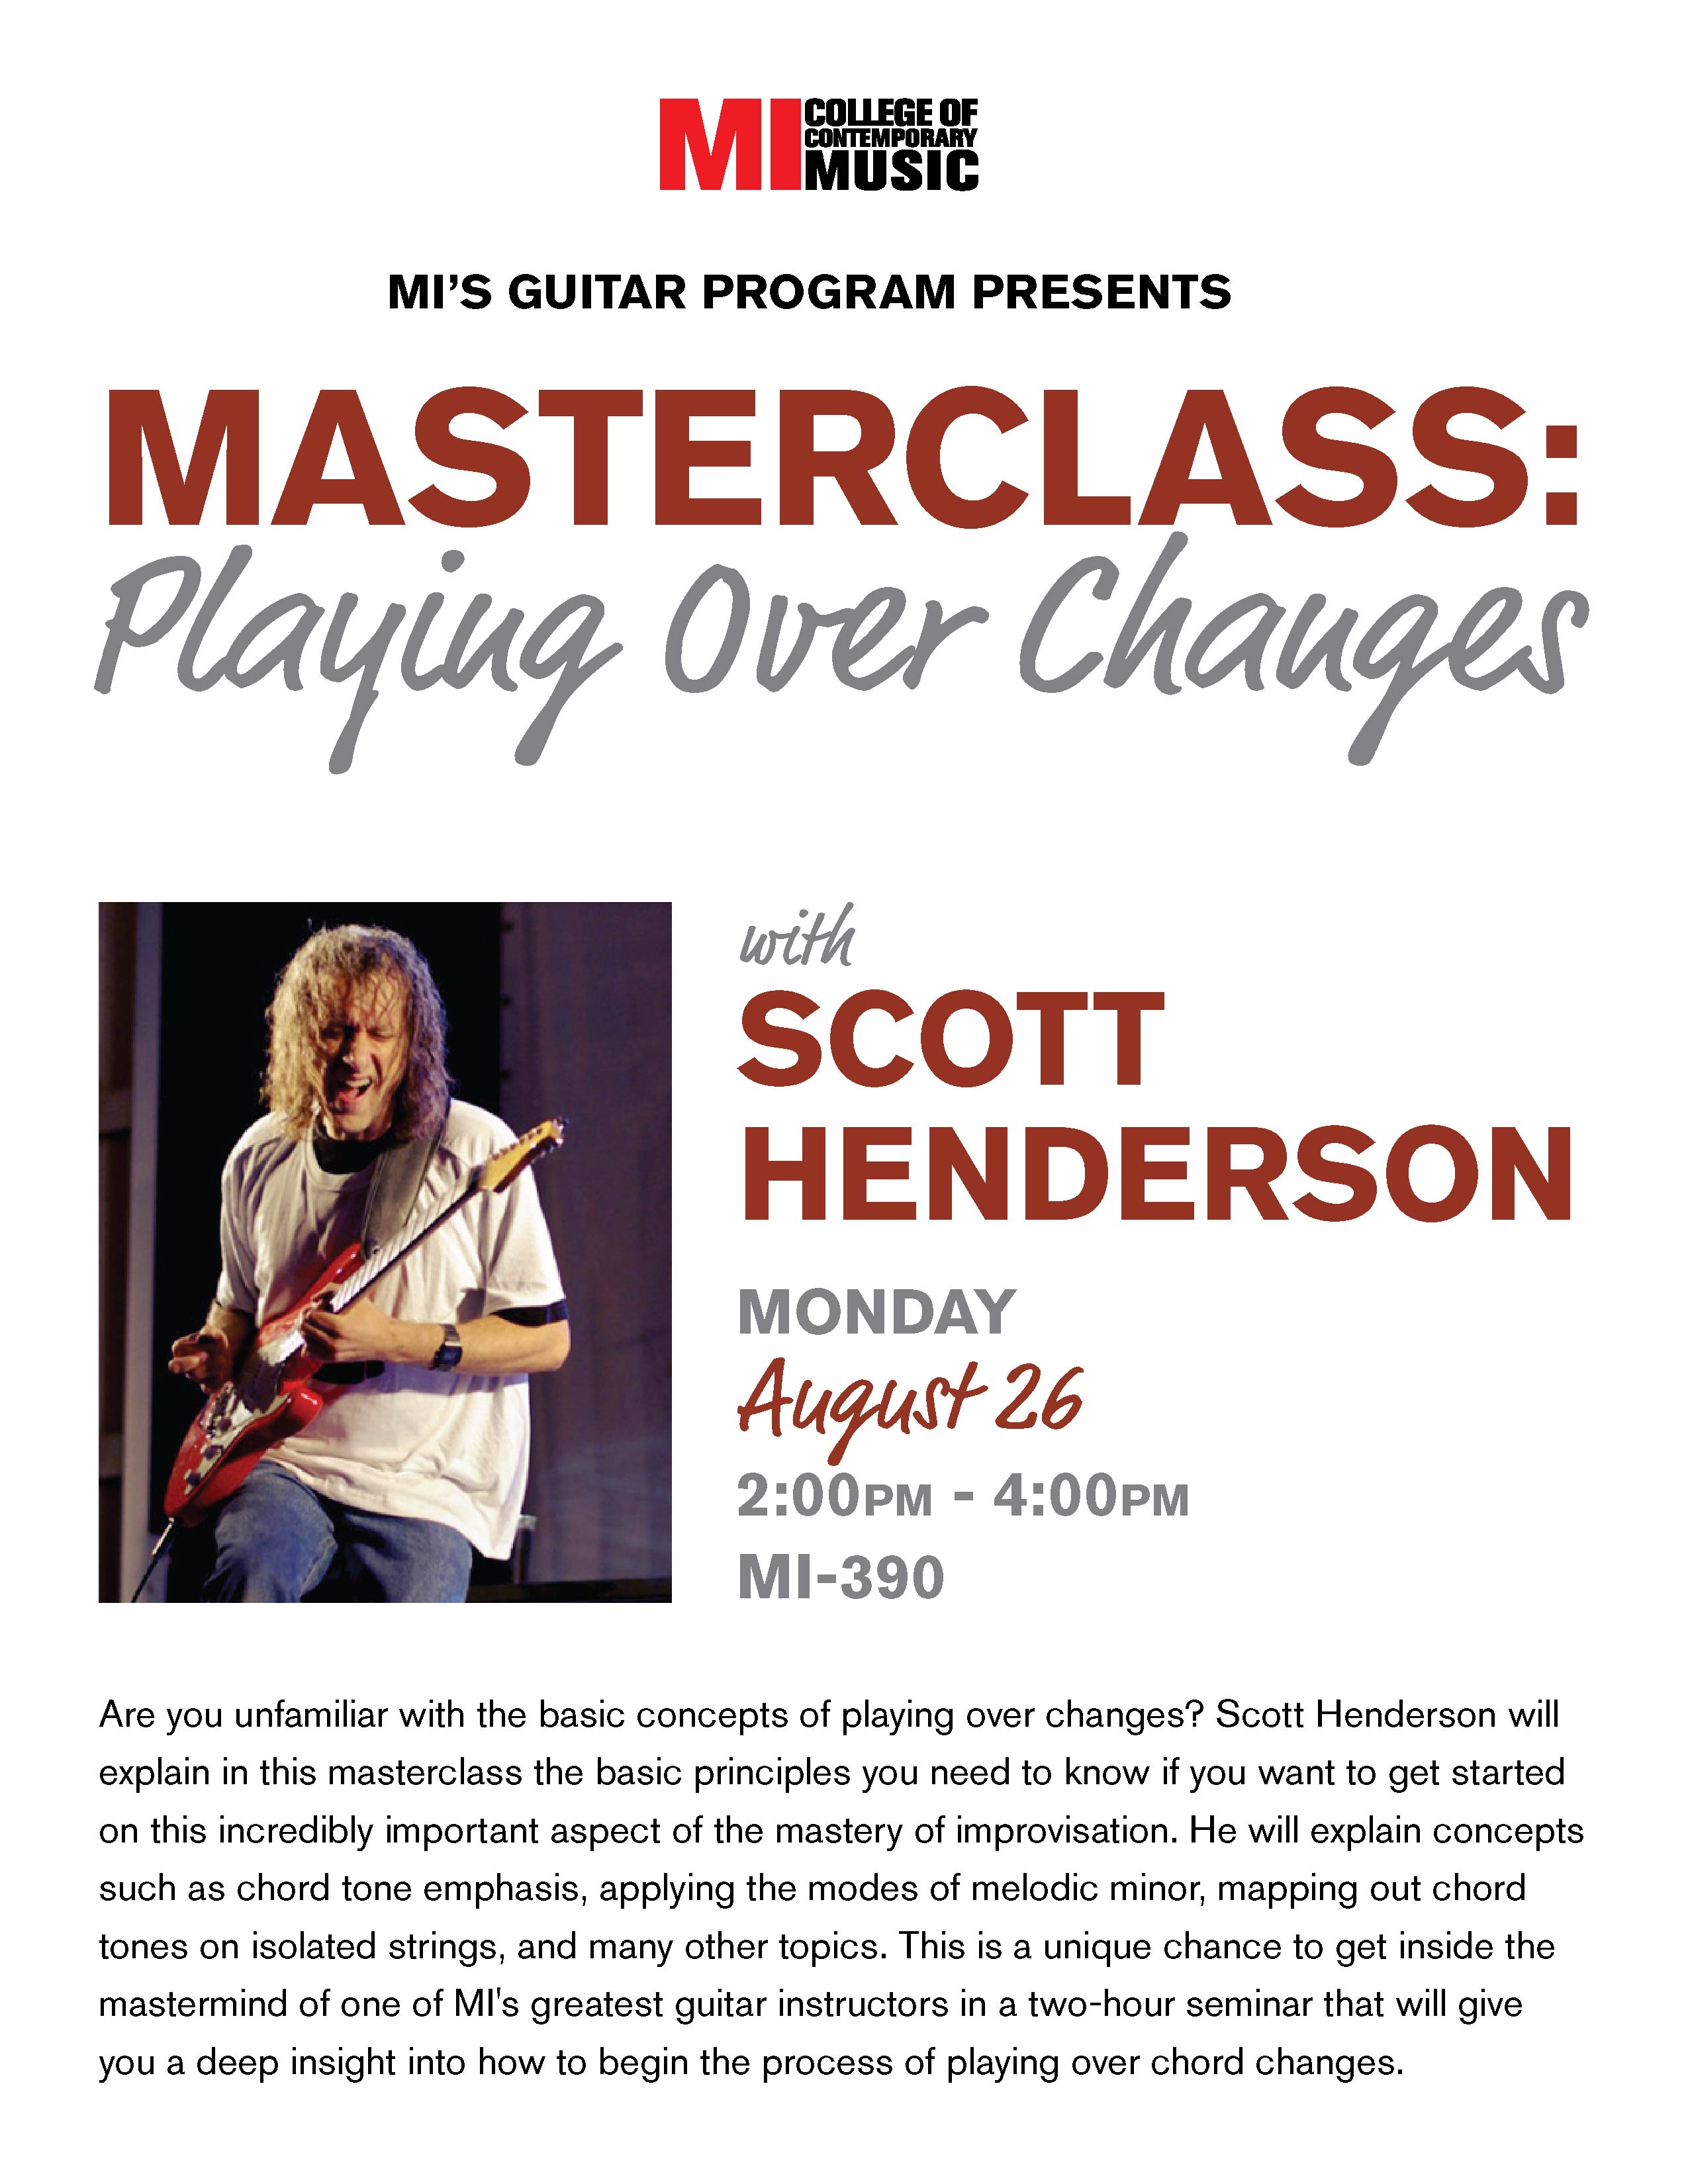 MASTERCLASS: playing over changes with SCOTT HENDERSON MONDAY, AUGUST 26, 2019, 2 – 4PM